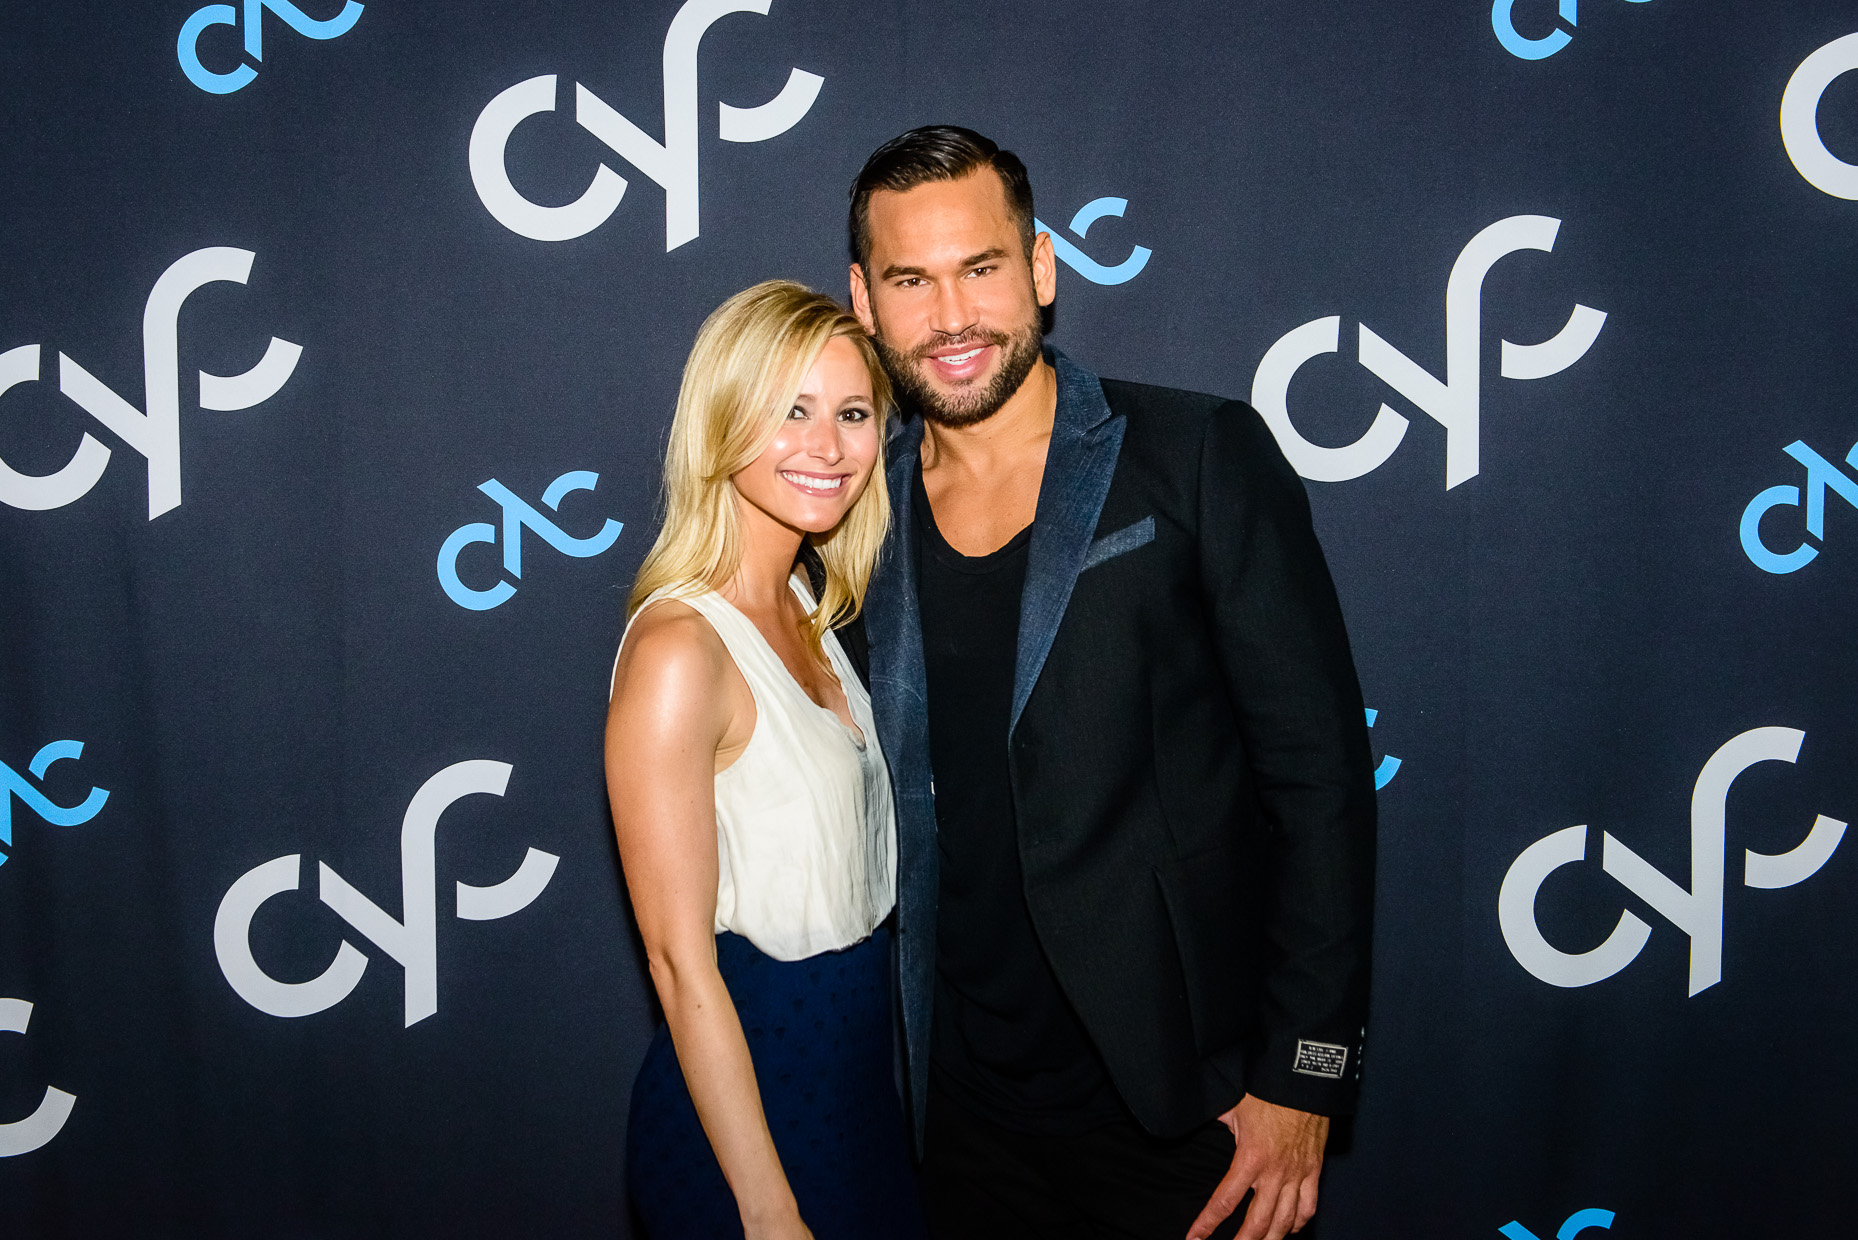 Austin-Event-Photobooth-Photographer-CYC-Fitness.jpg